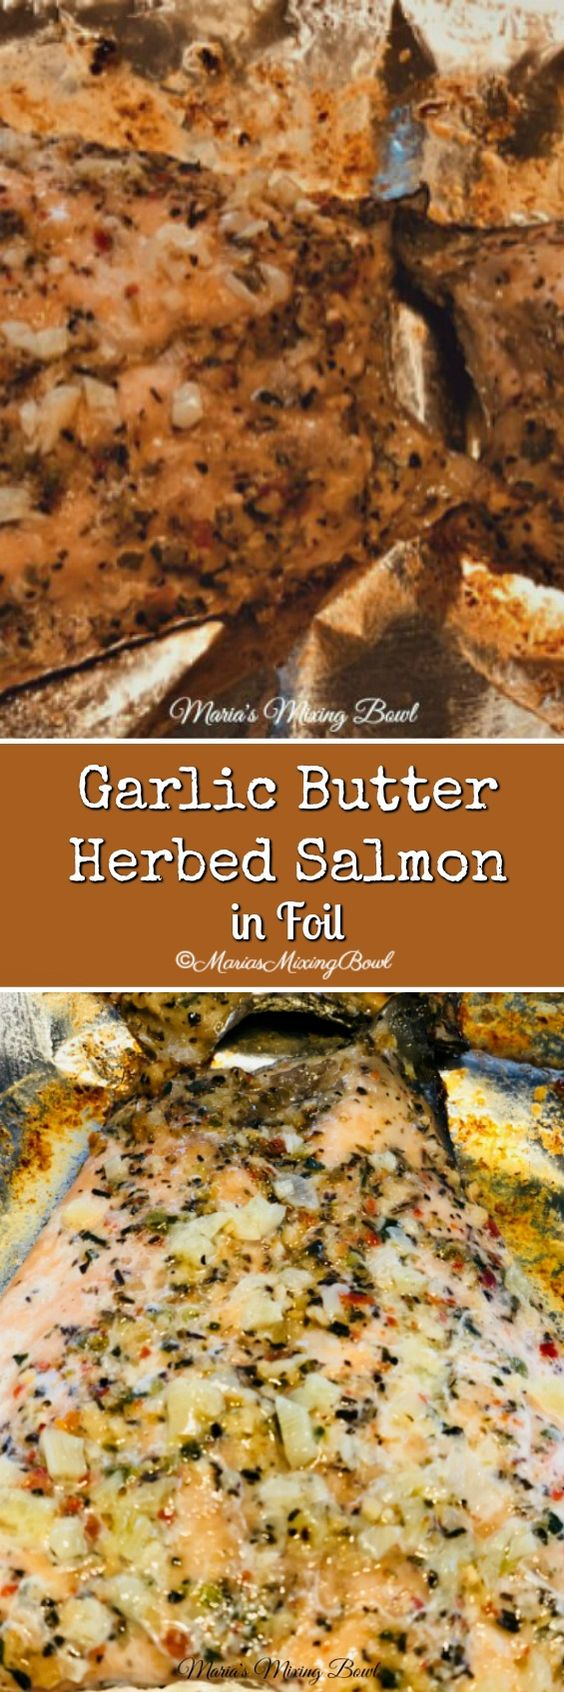 Garlic Butter Herbed Salmon in Foil is a super easy weeknight recipe. So simple but elegant enough to serve to company. Ready is less than 25 minutes and delicious served with some simple jasmine rice and roasted vegetables.